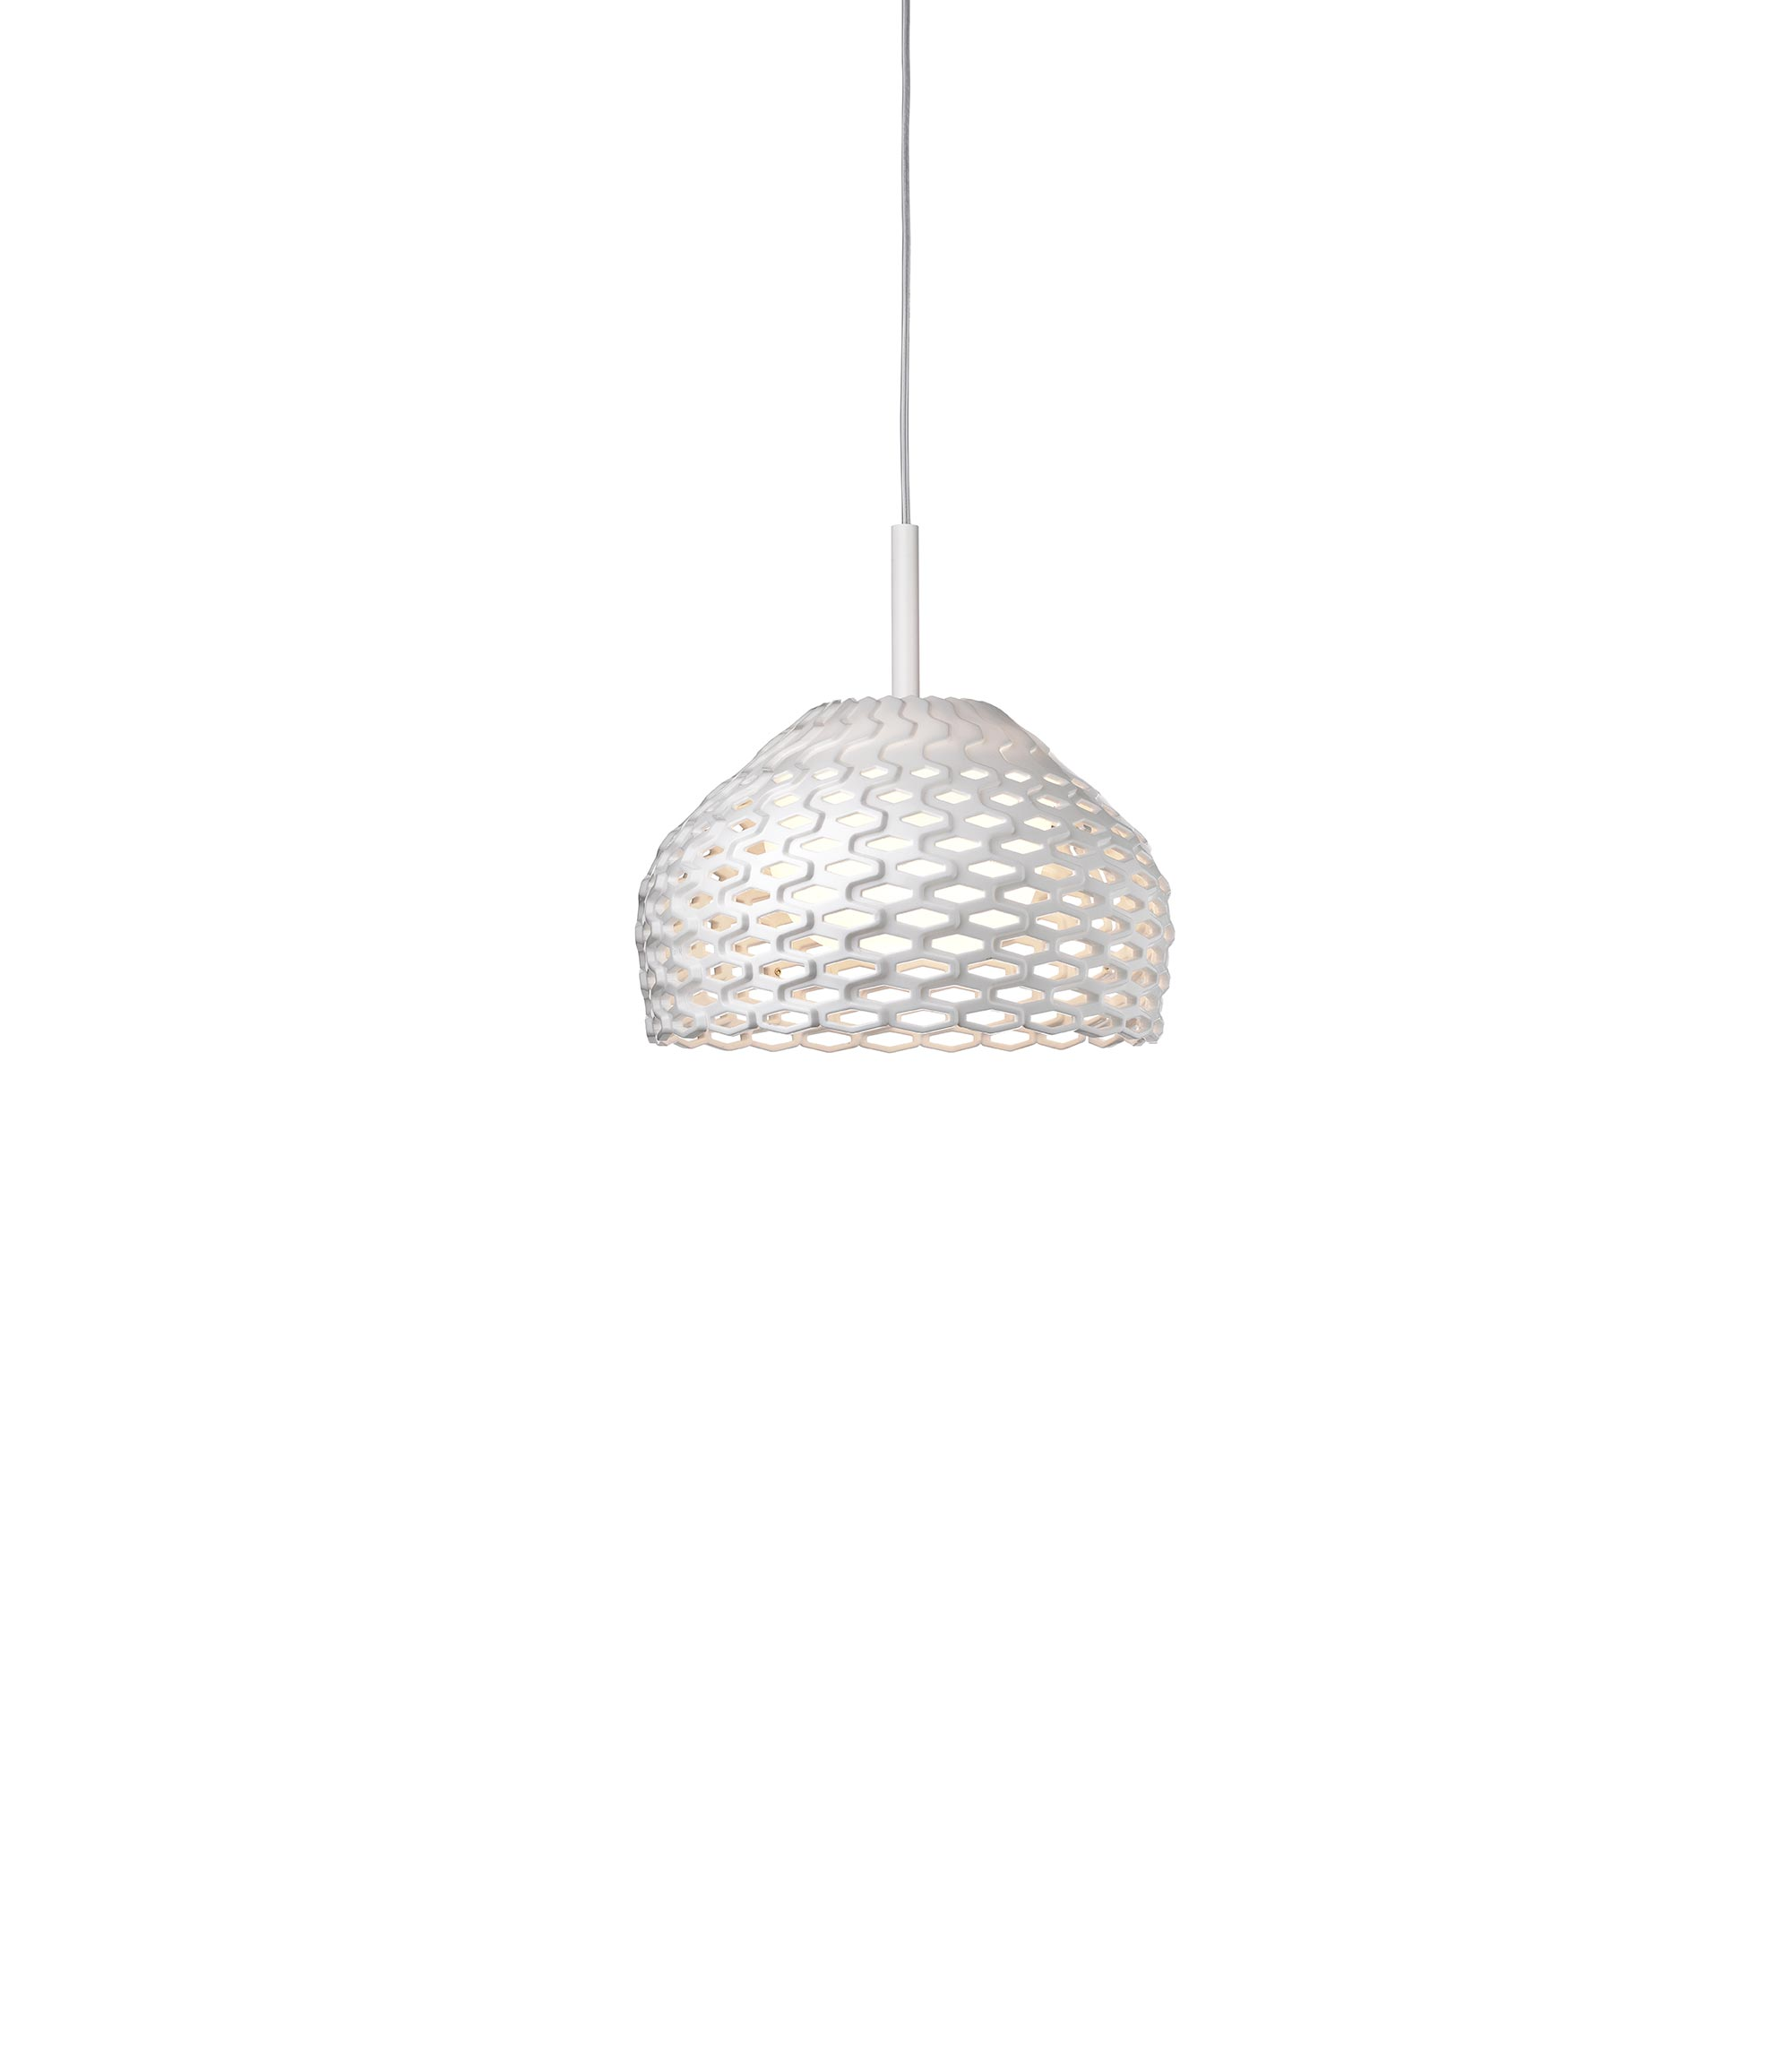 Tatou suspension 1 urquiola flos F7762009 product still life big 2